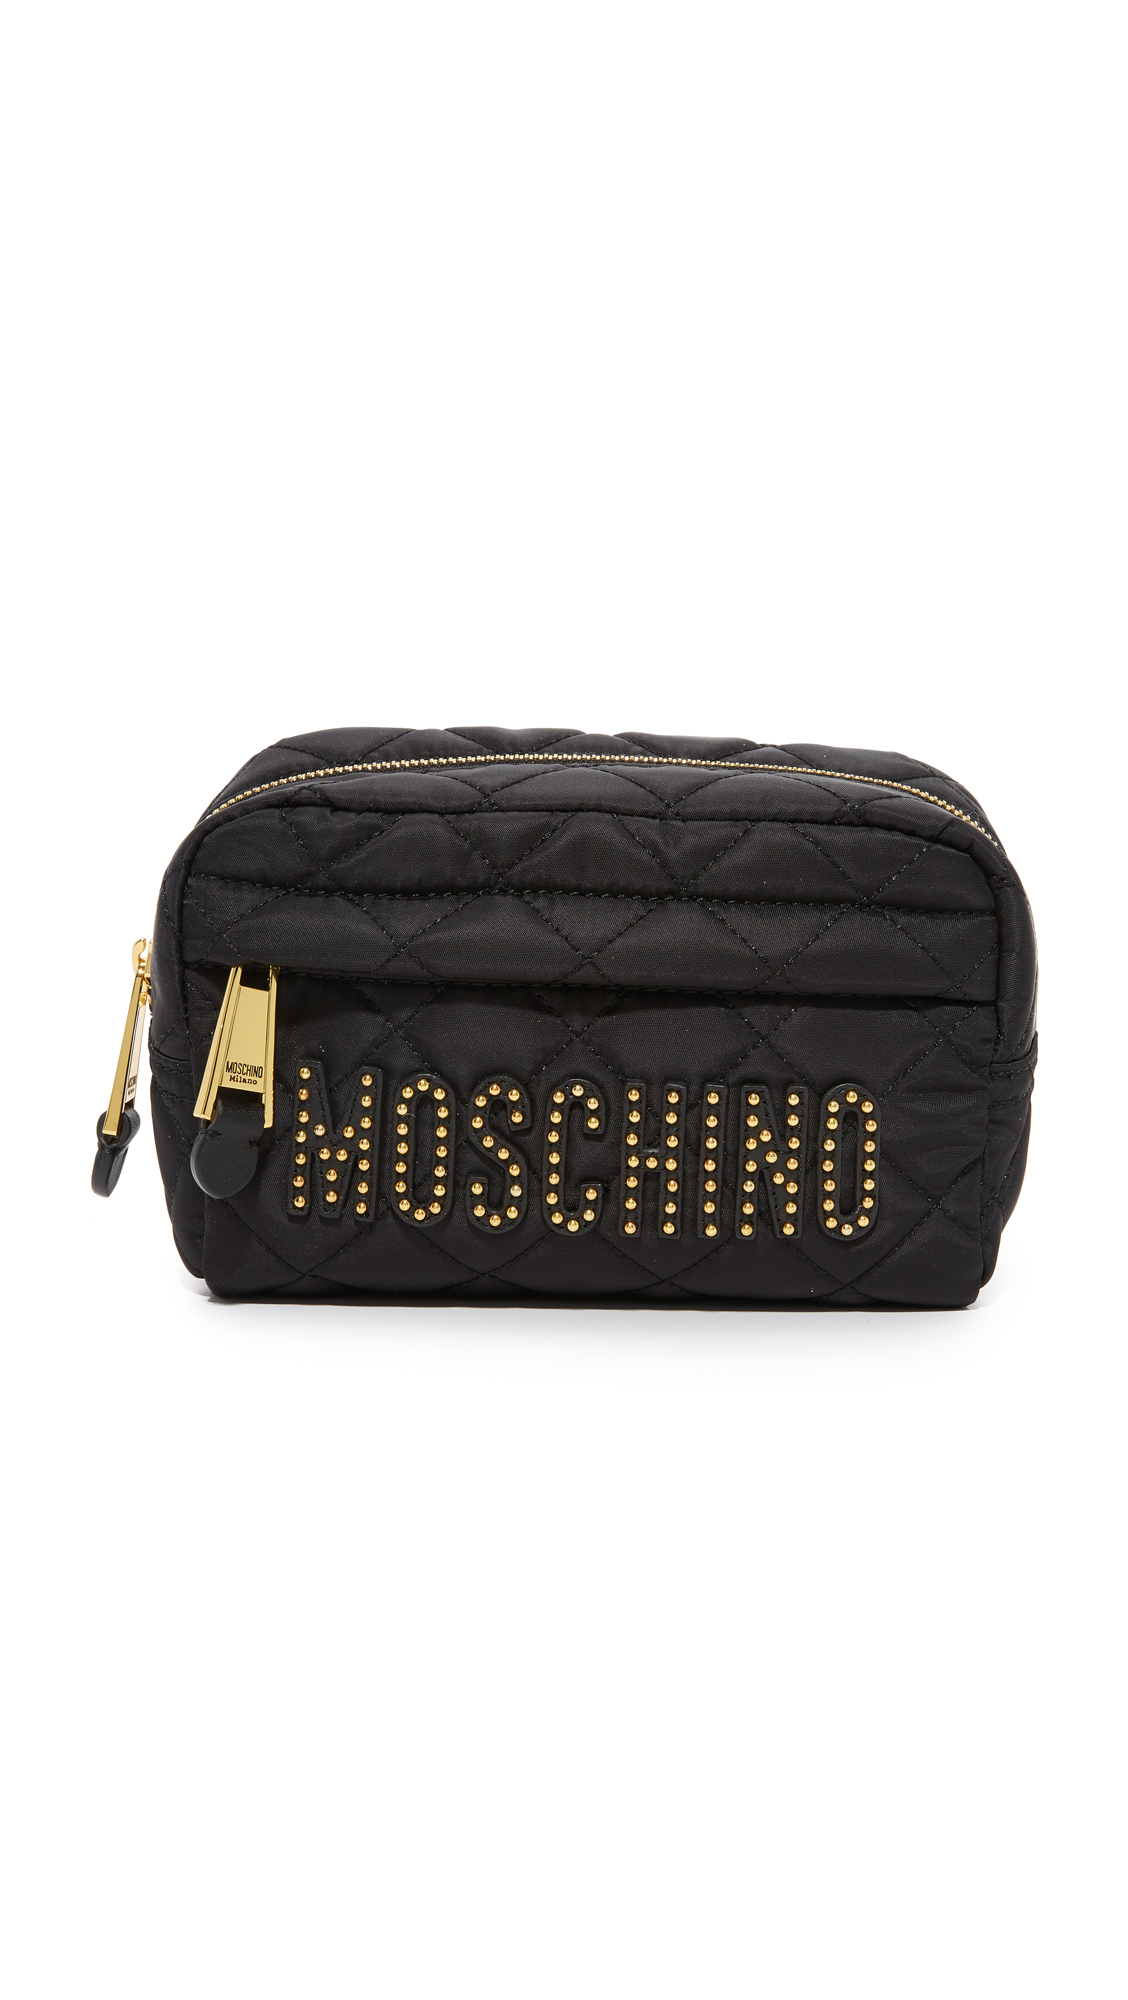 Moschino Beauty Case - Black at Shopbop